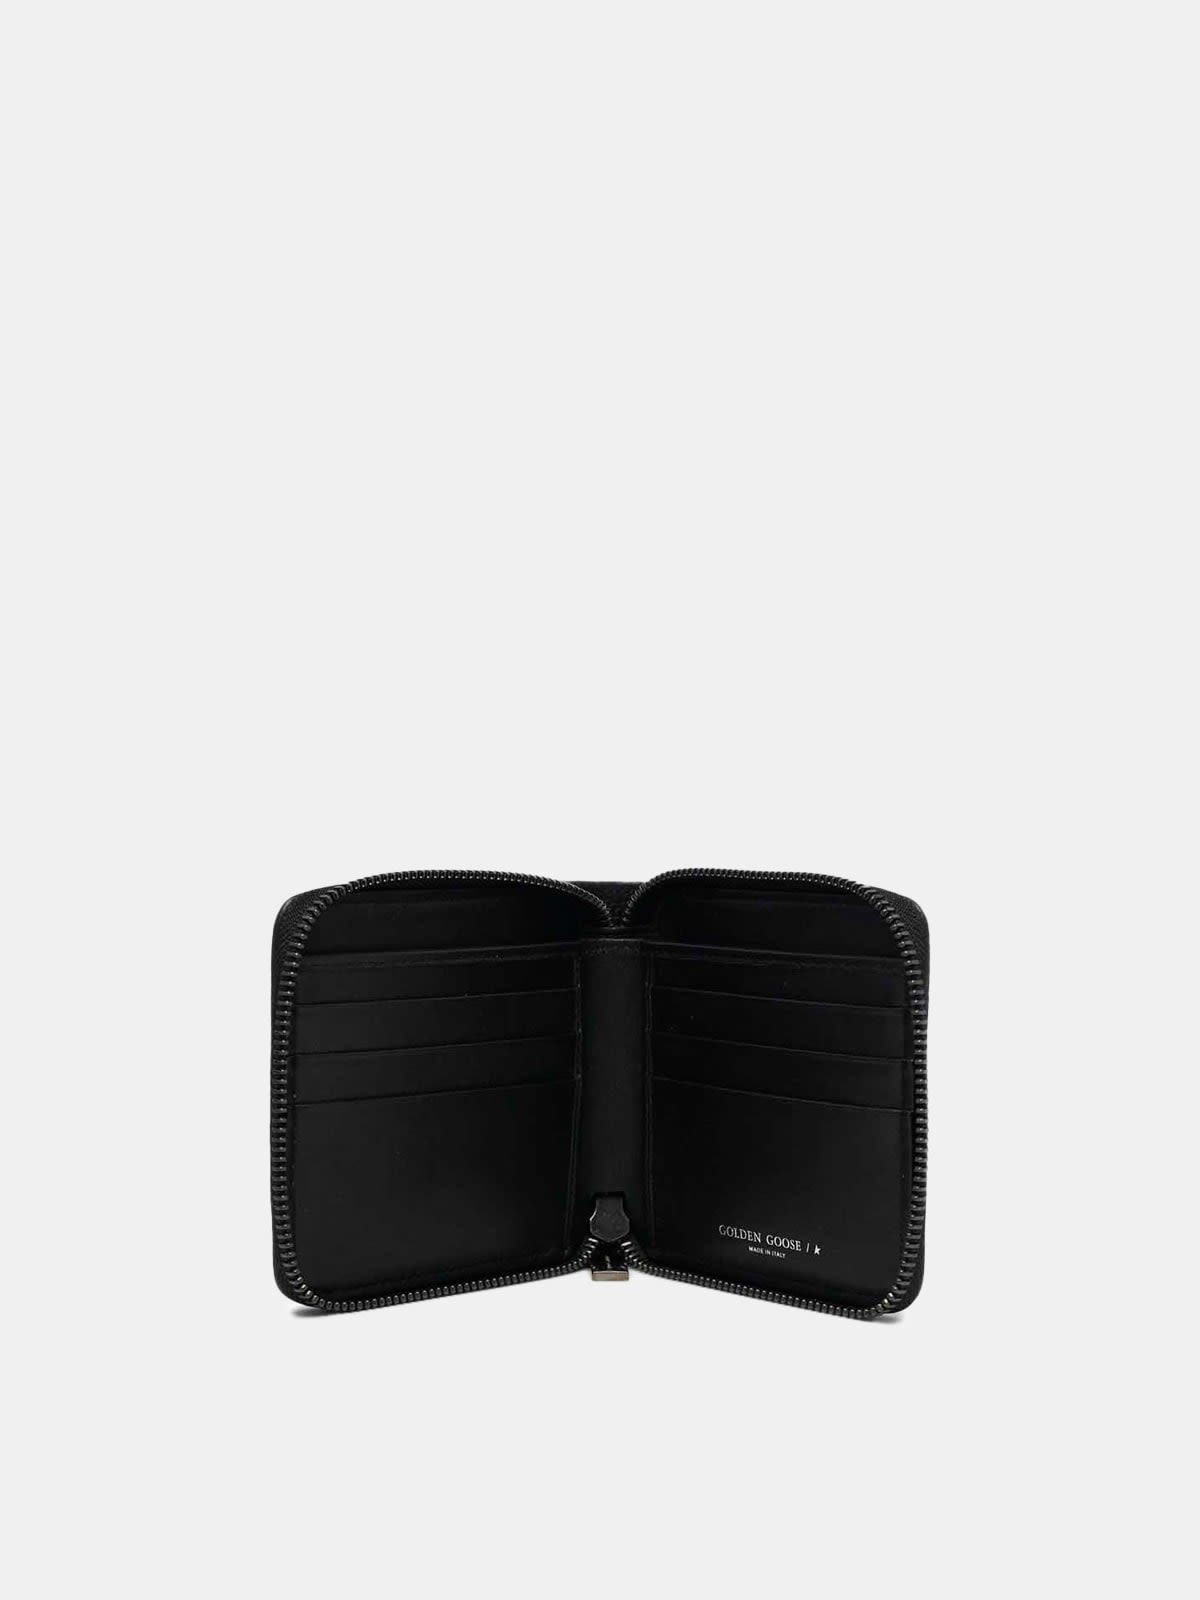 Medium black Star Wallet